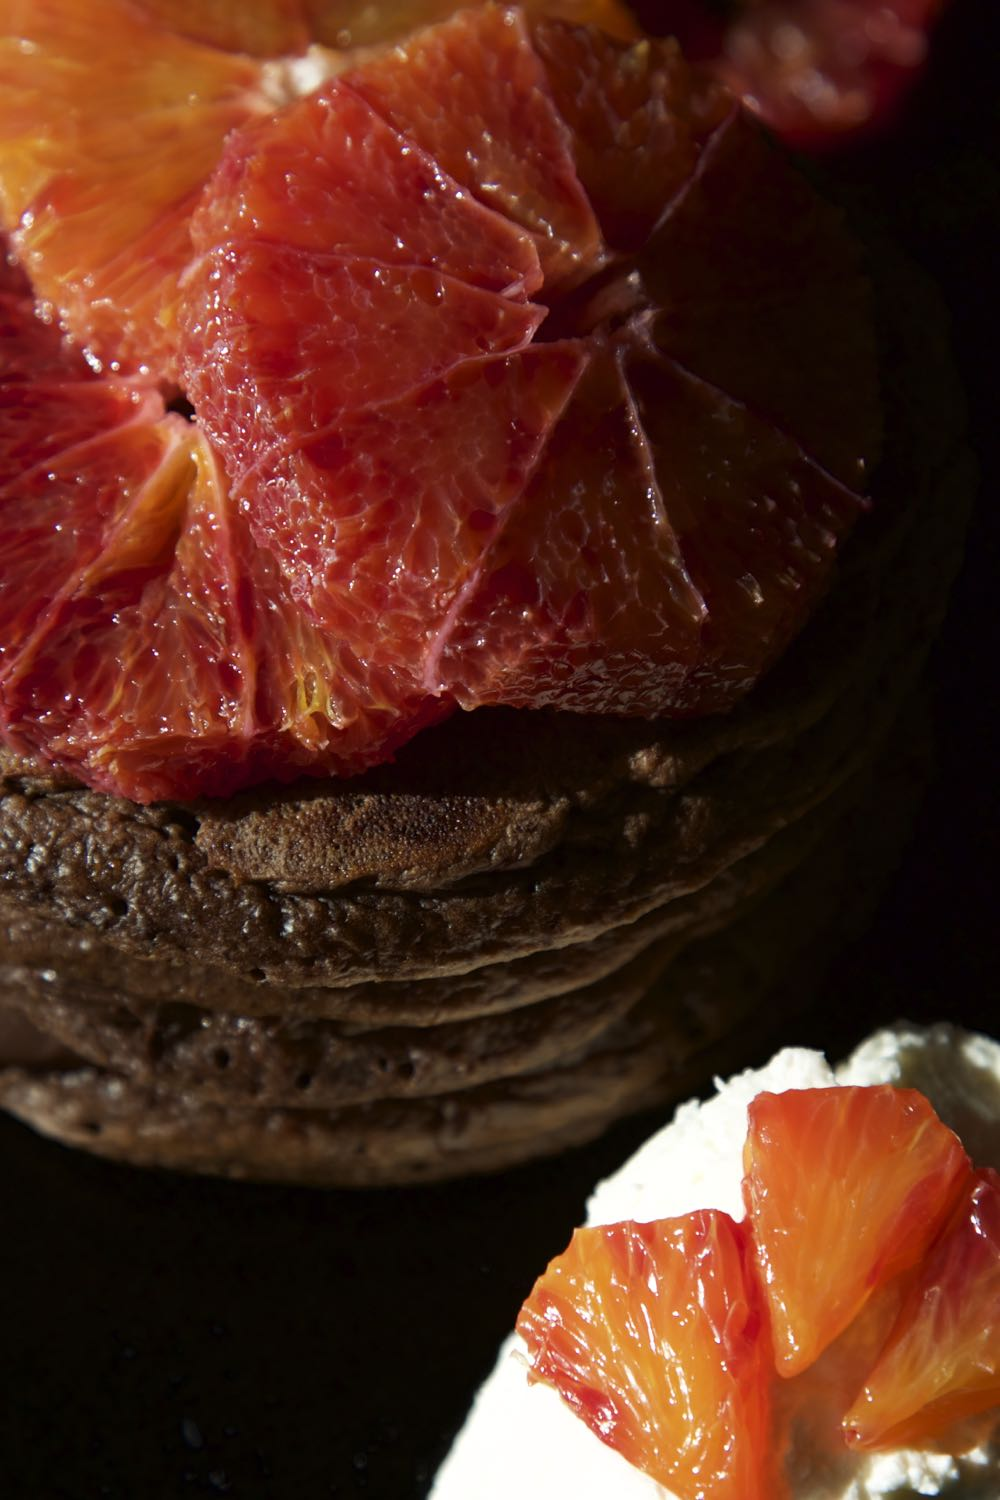 Chocolate Orange Pancakes with Blood Oranges and Orange Blossom Cream